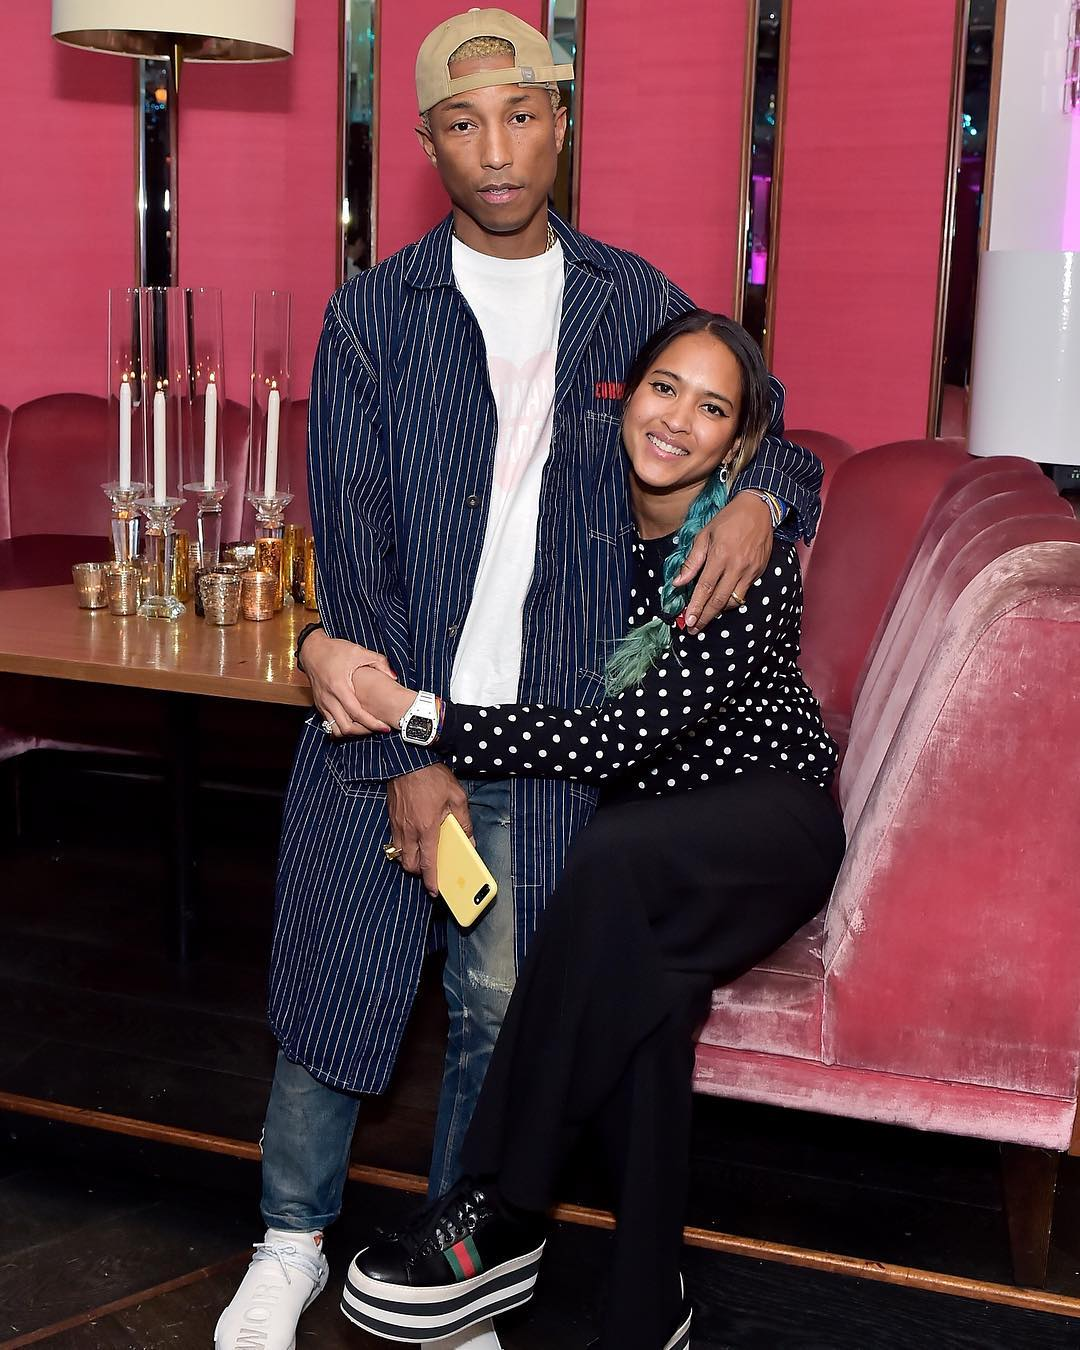 SPOTTED: Pharrell and Helen Lasichanh in Gucci and Pharrell x adidas Sneakers